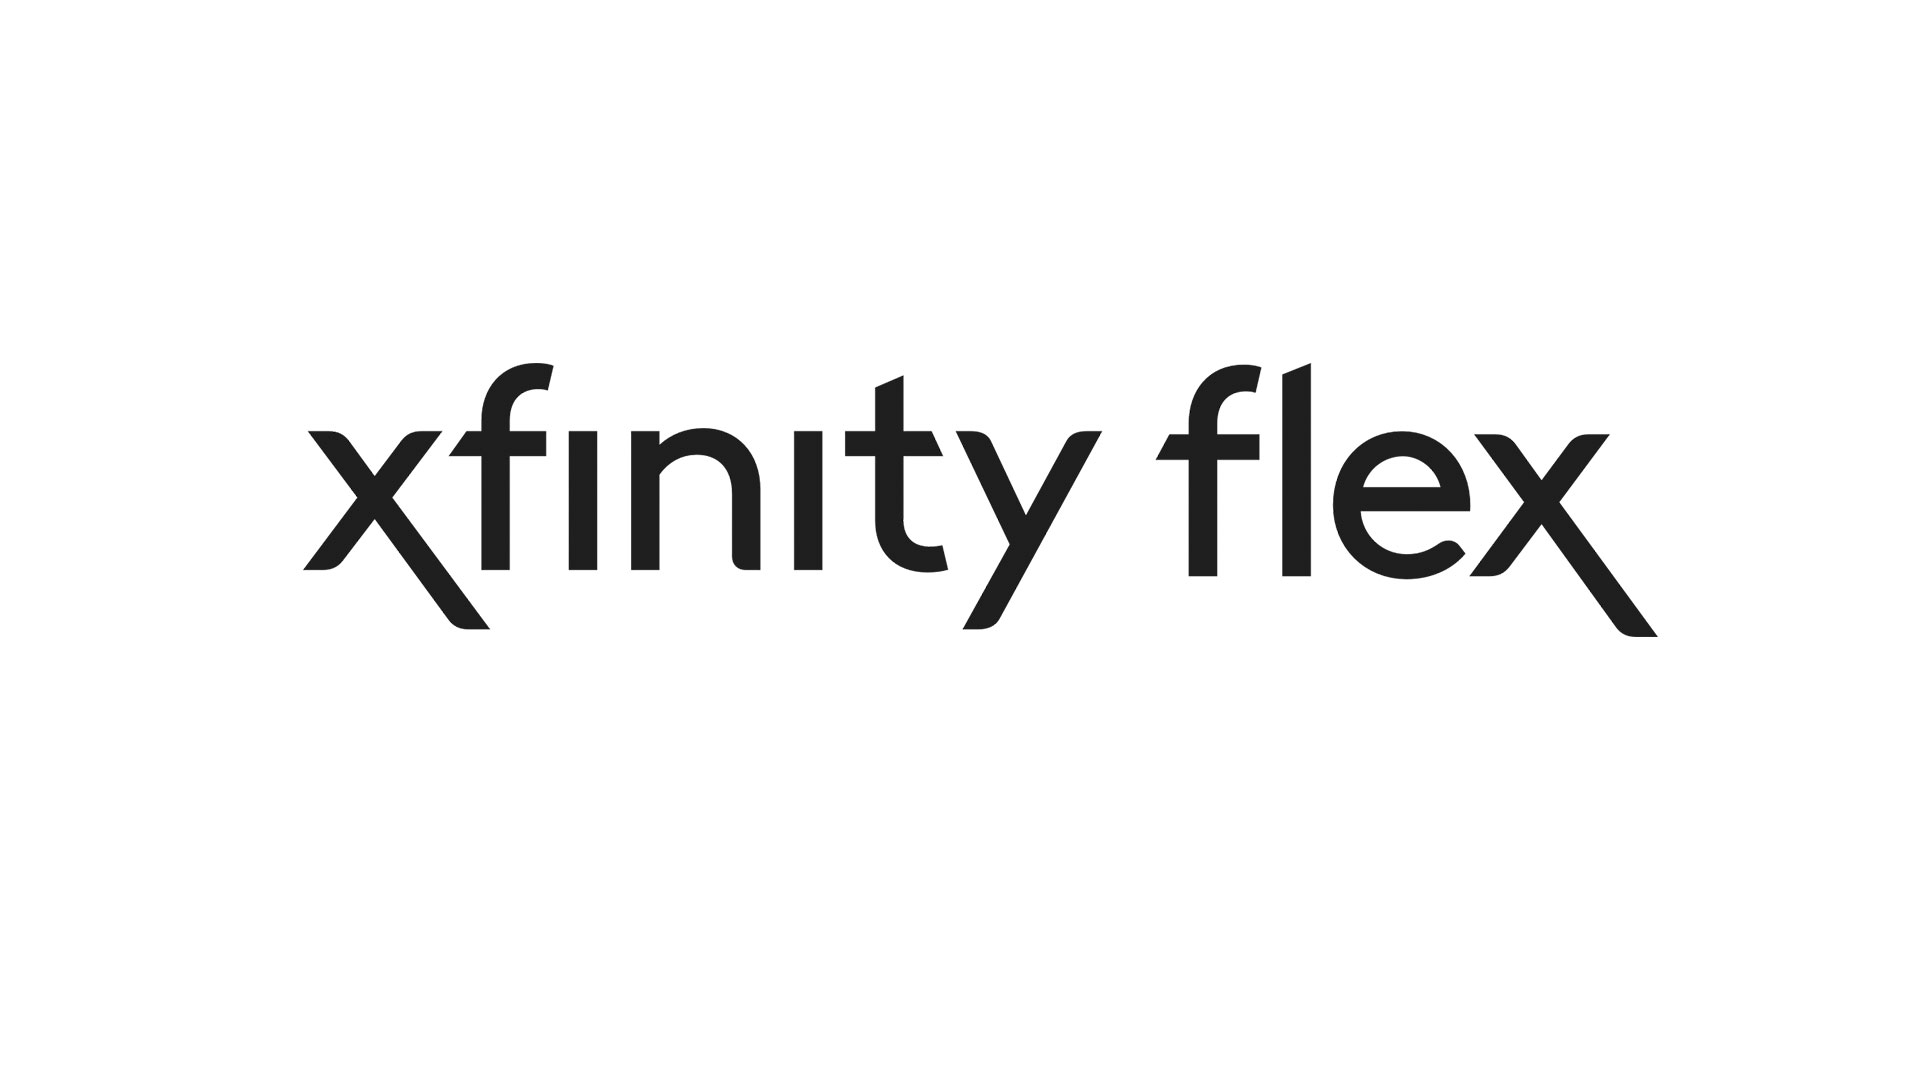 Xfinity Comcast To Launch Xfinity Flex Streaming Platform For Xfinity